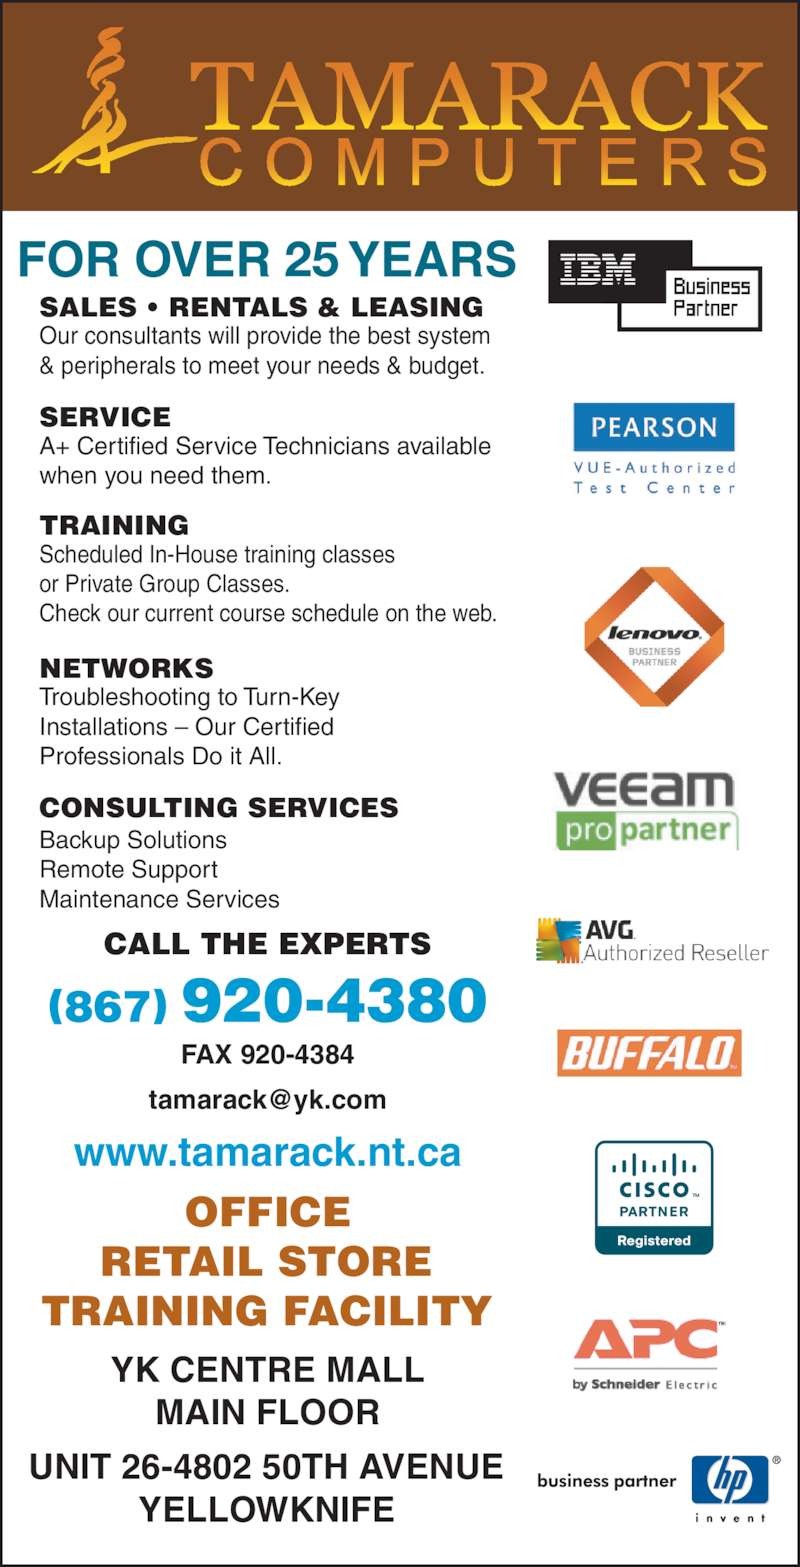 Tamarack Computers (867-920-4380) - Display Ad - OFFICE RETAIL STORE TRAINING FACILITY YK CENTRE MALL MAIN FLOOR UNIT 26-4802 50TH AVENUE YELLOWKNIFE CALL THE EXPERTS FAX 920-4384 www.tamarack.nt.ca SALES • RENTALS & LEASING Our consultants will provide the best system & peripherals to meet your needs & budget. SERVICE A+ Certified Service Technicians available when you need them. TRAINING Scheduled In-House training classes or Private Group Classes. Check our current course schedule on the web. NETWORKS Troubleshooting to Turn-Key Installations – Our Certified Professionals Do it All. Backup Solutions Remote Support Maintenance Services CONSULTING SERVICES